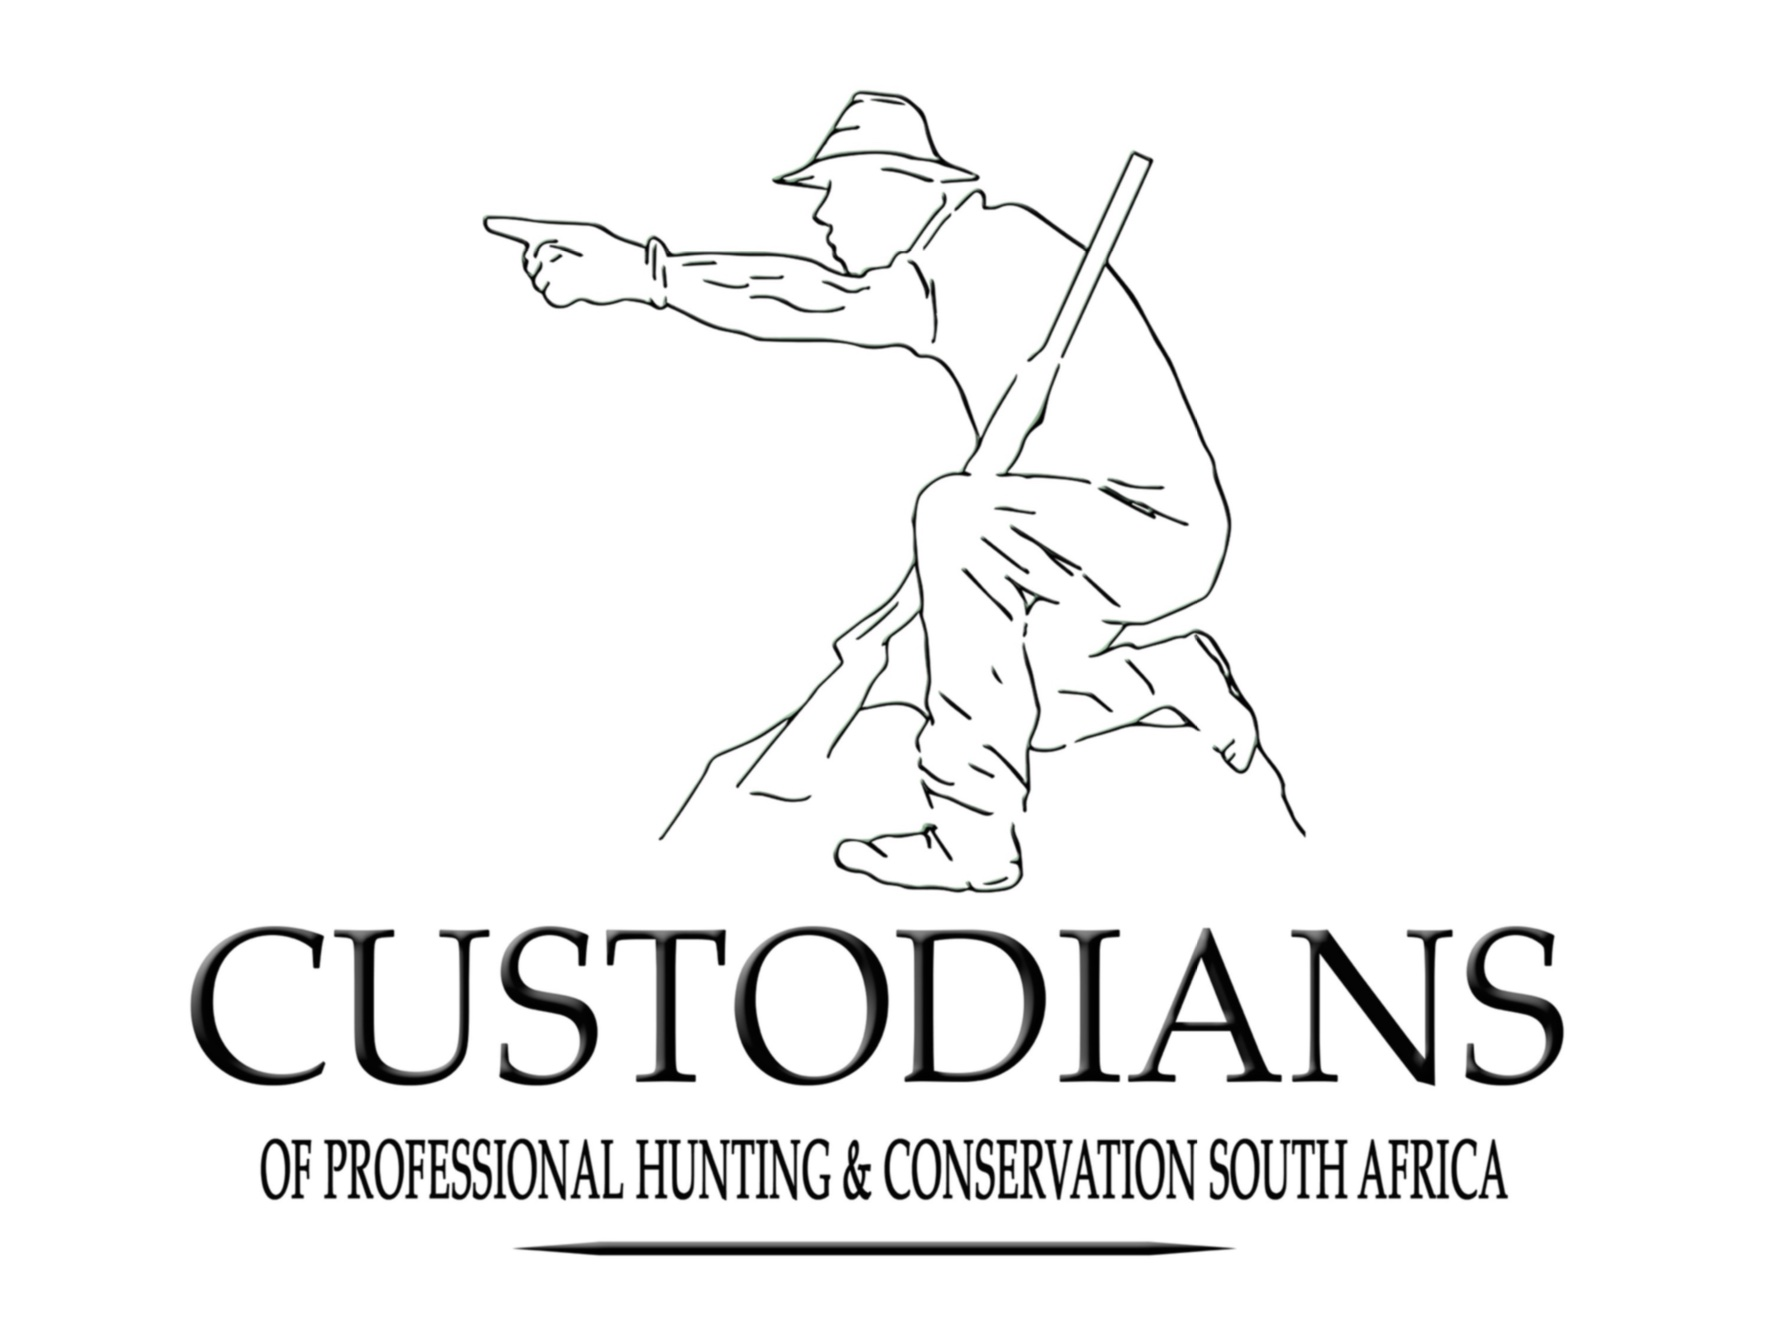 Custodians-Of-Professional-Hunting-Conservation-South-Africa.jpg